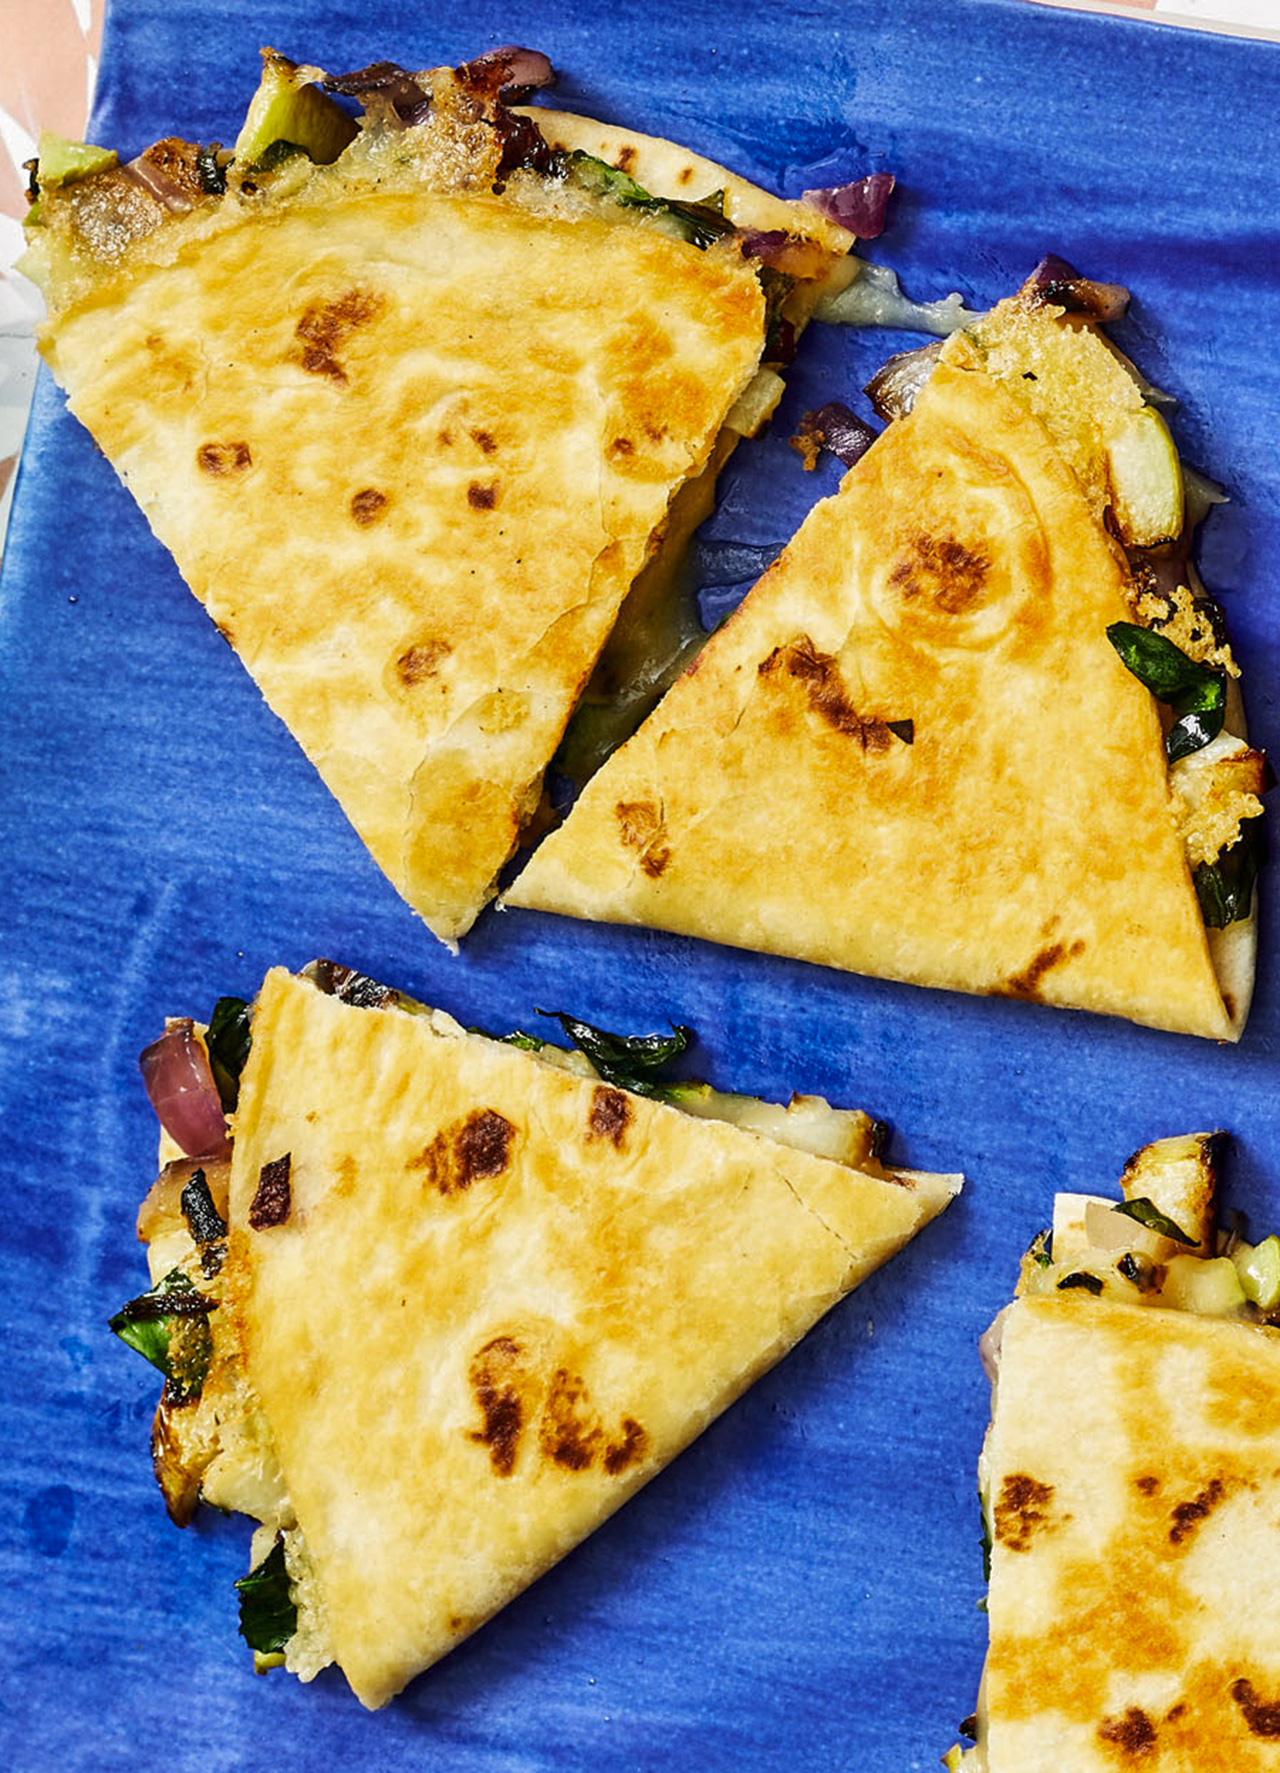 Grilled Chayote and Onion Quesadillas